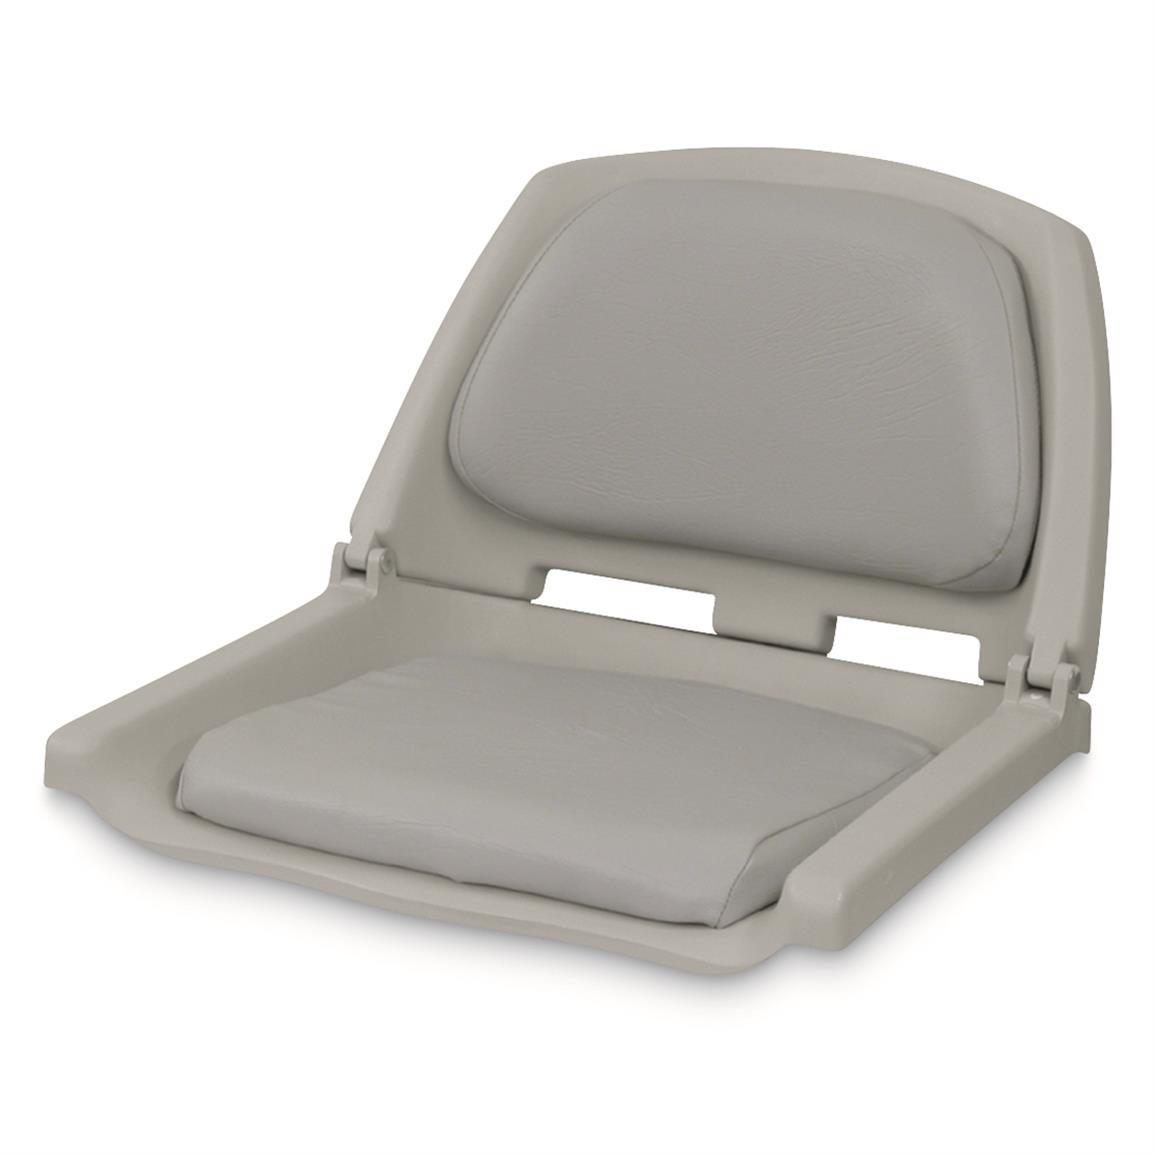 Wise Folding Fishing Boat Seat, Gray